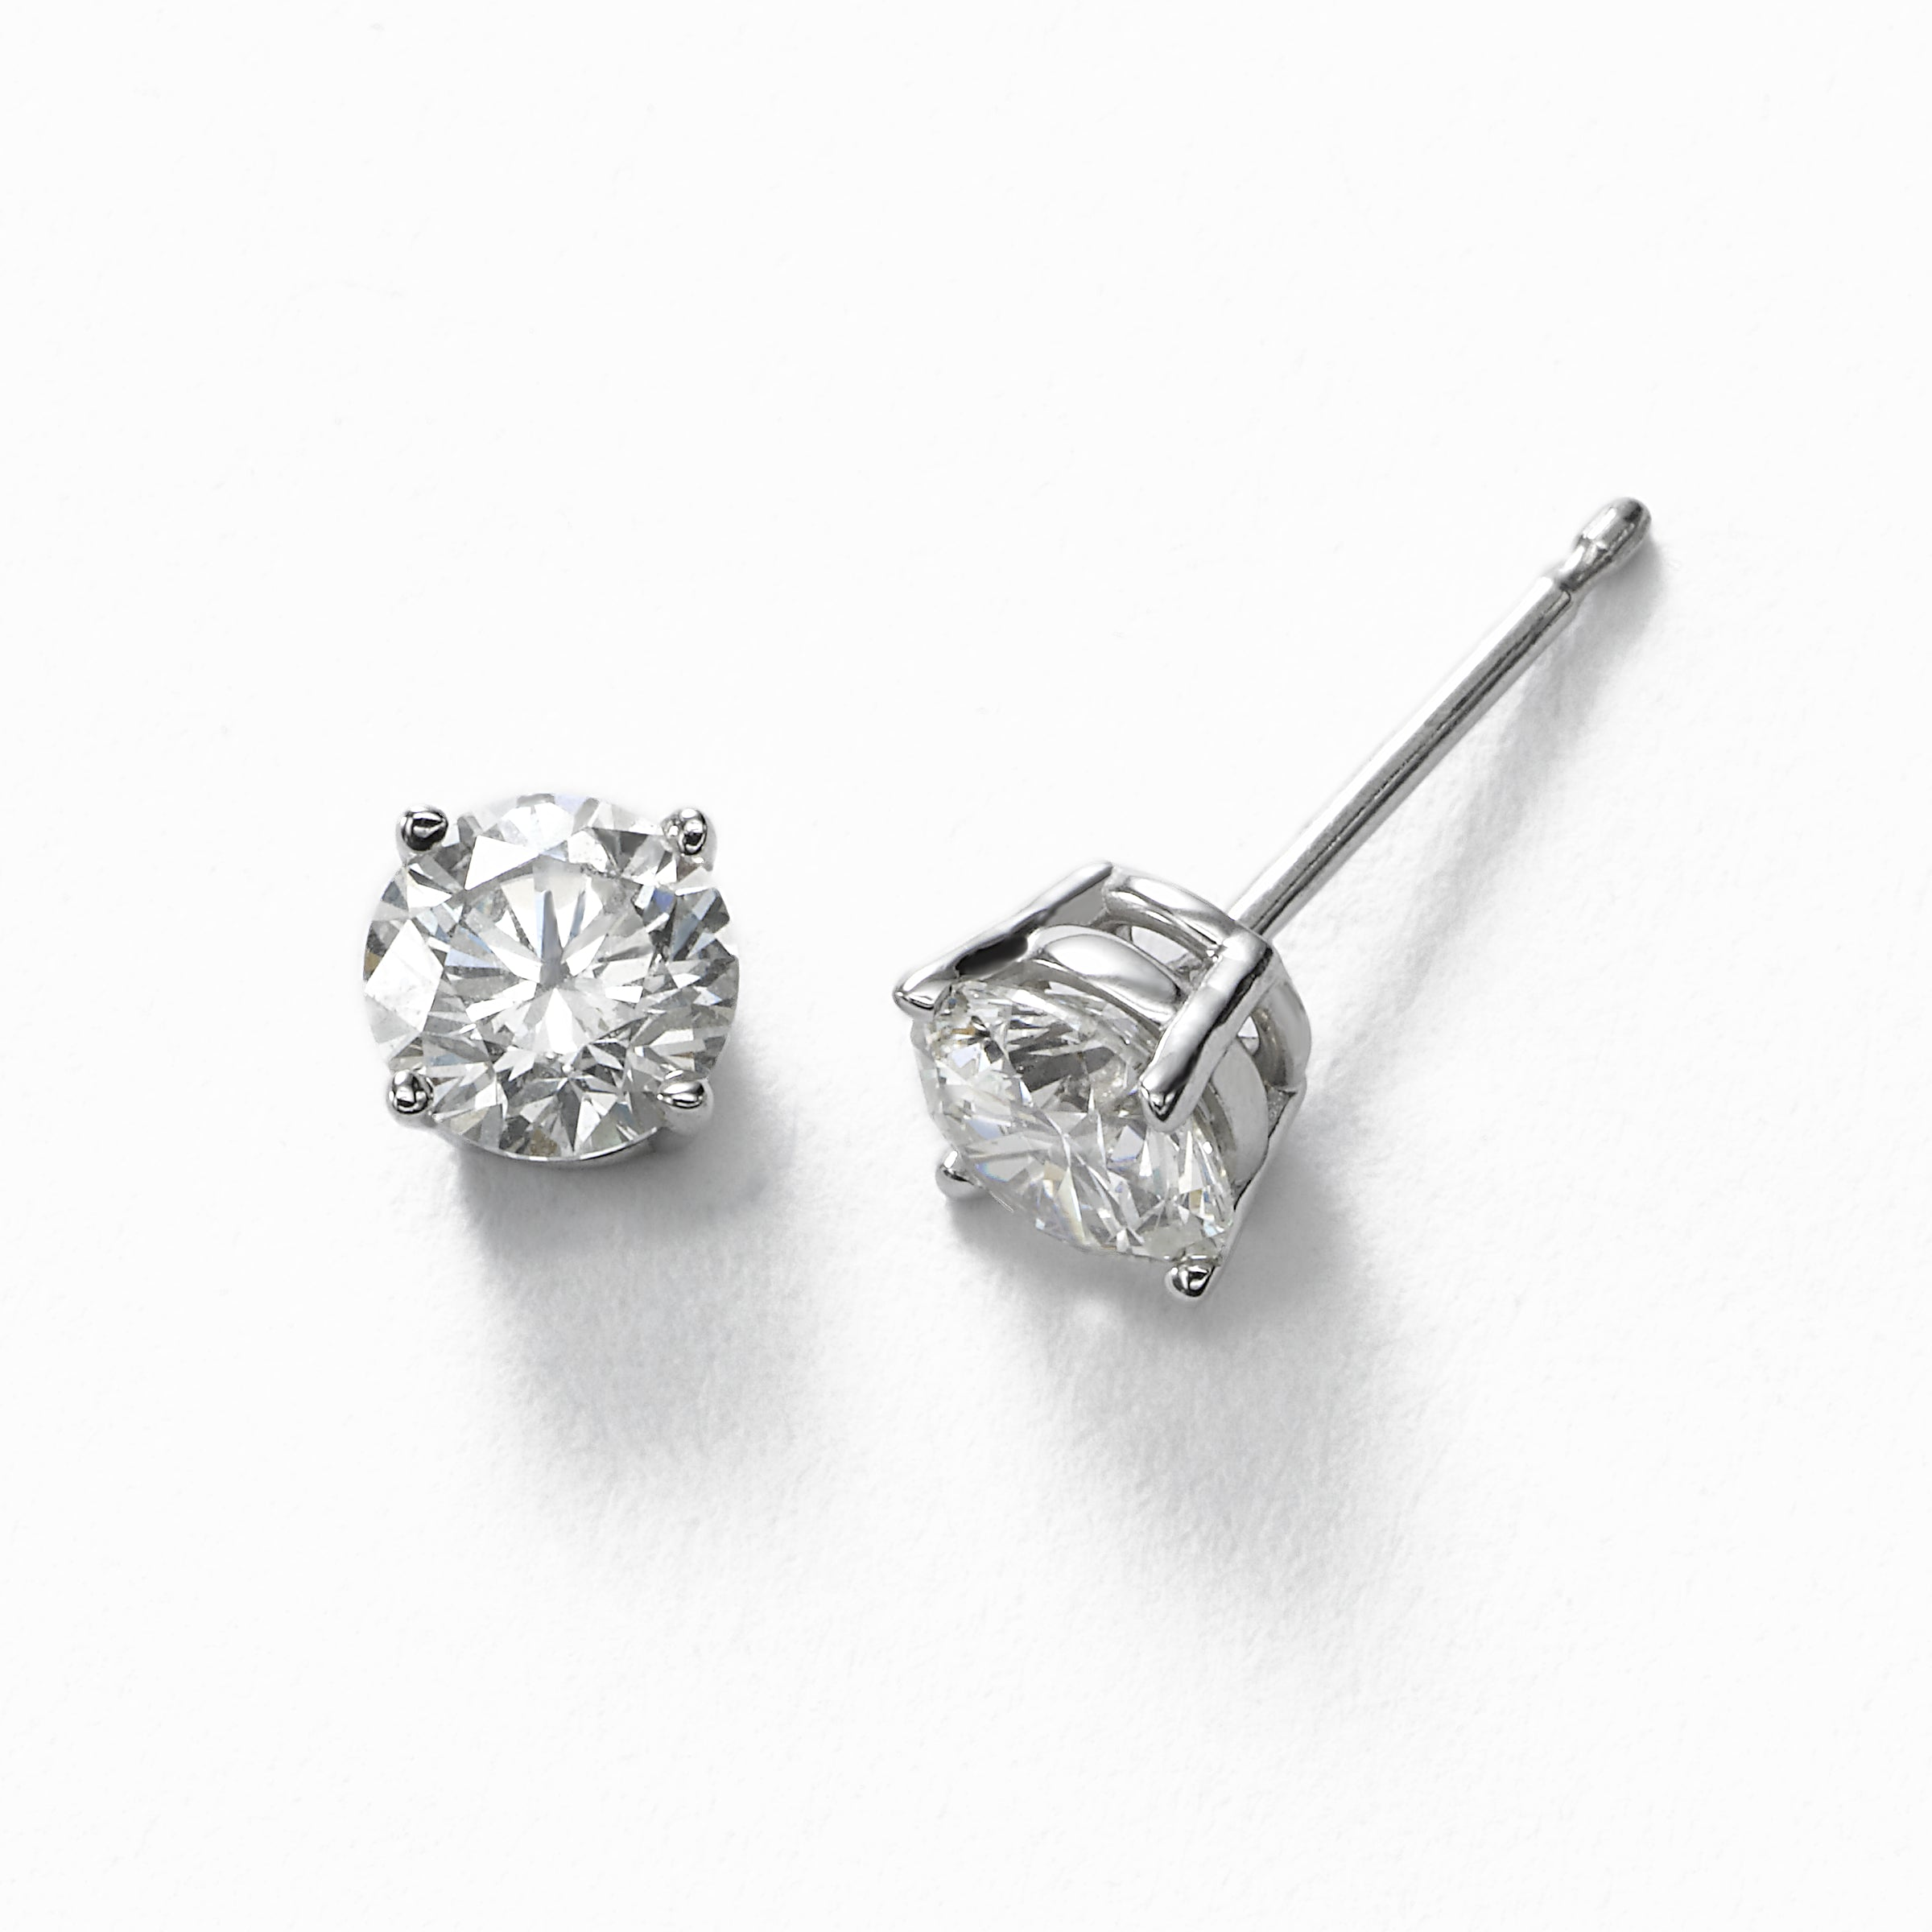 Diamond Stud Earrings, 1.40 Carats total, H-SI2, 14K White Gold